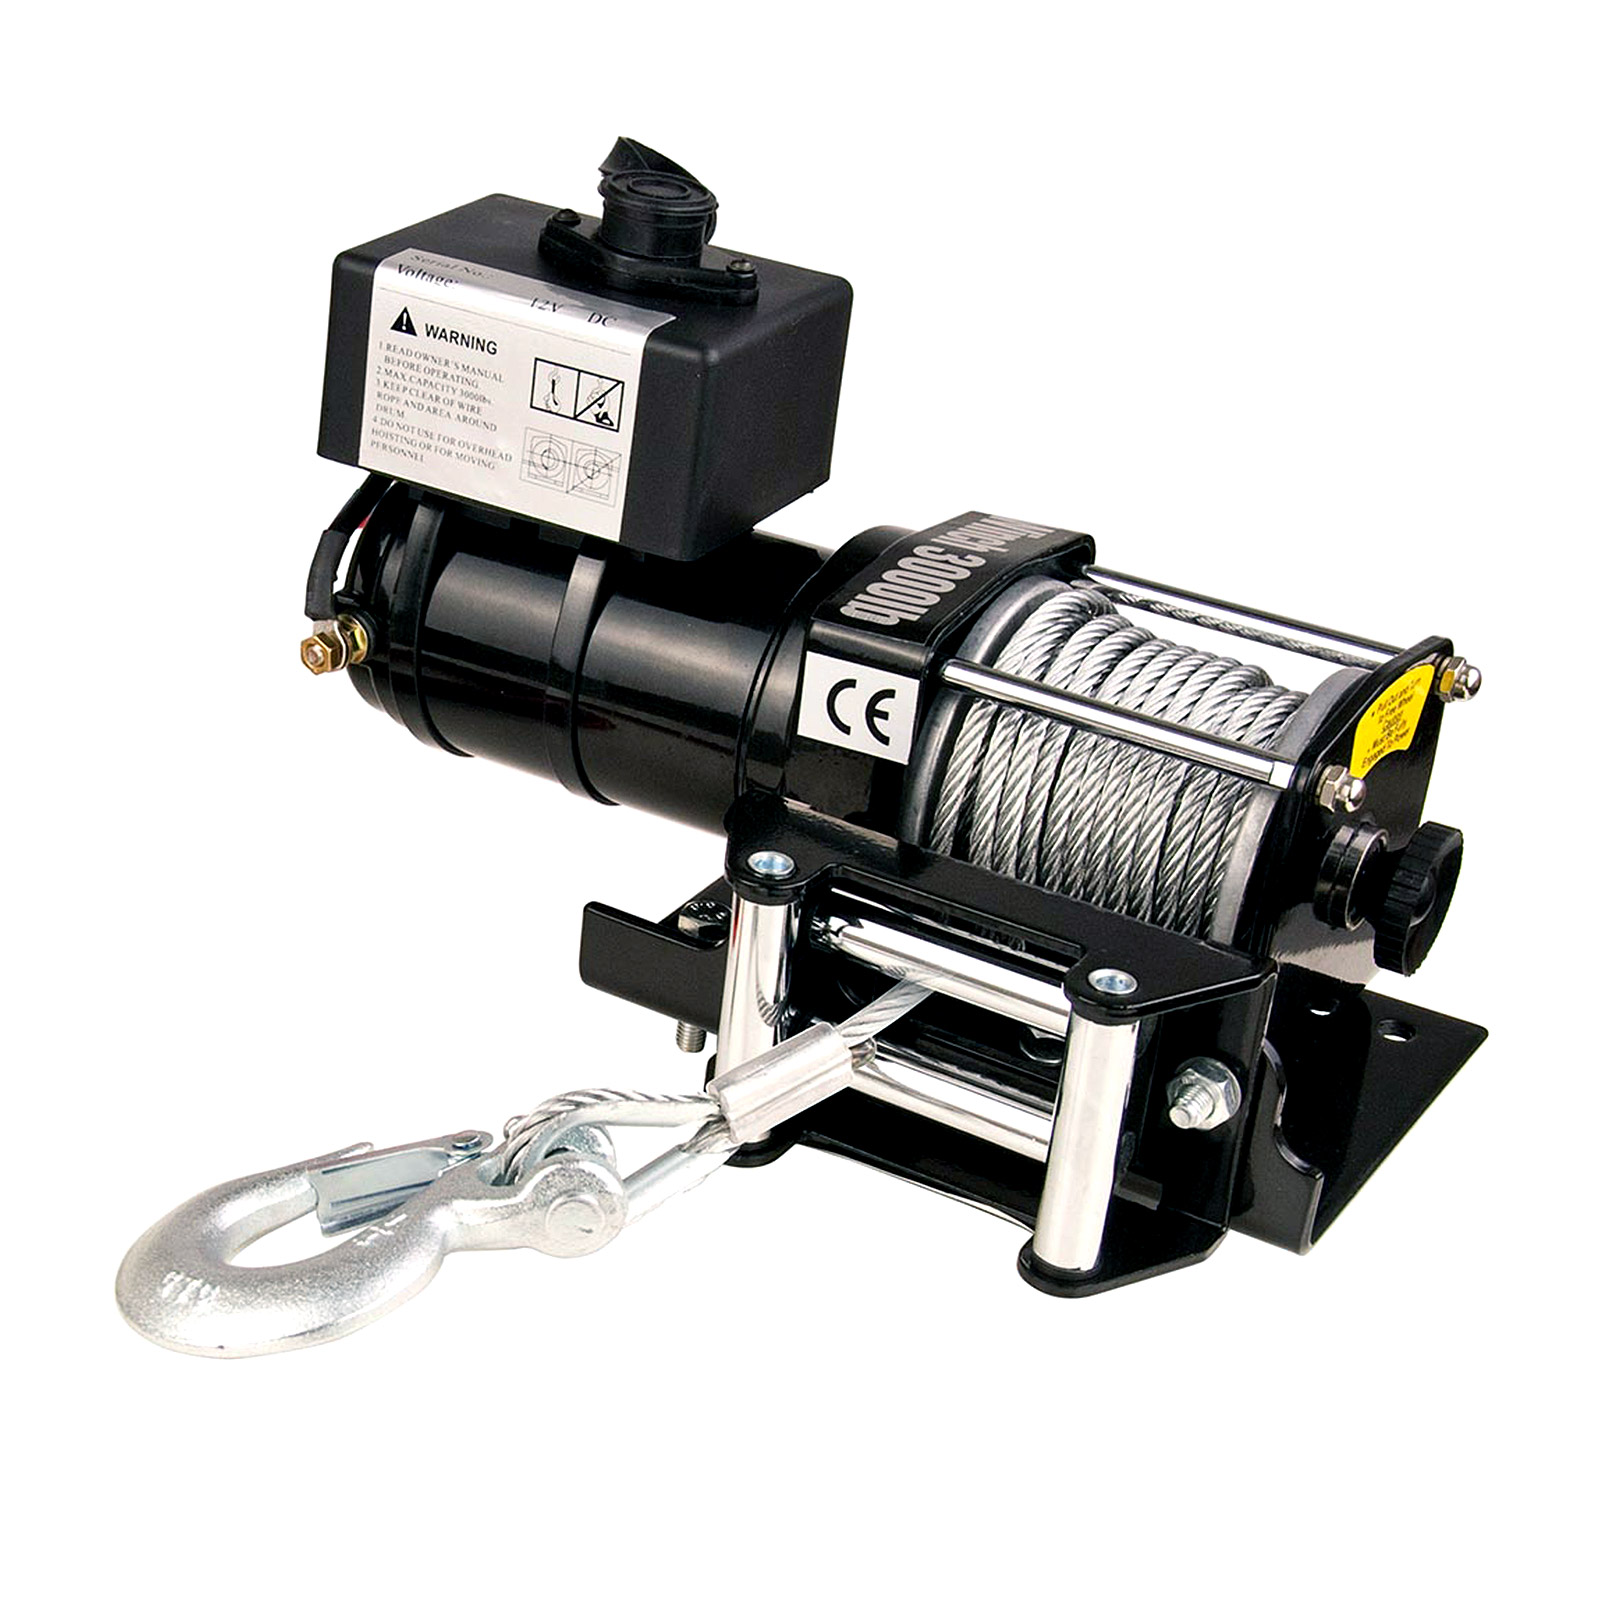 12V 3000LBS Electric Winch with Wireless Remote